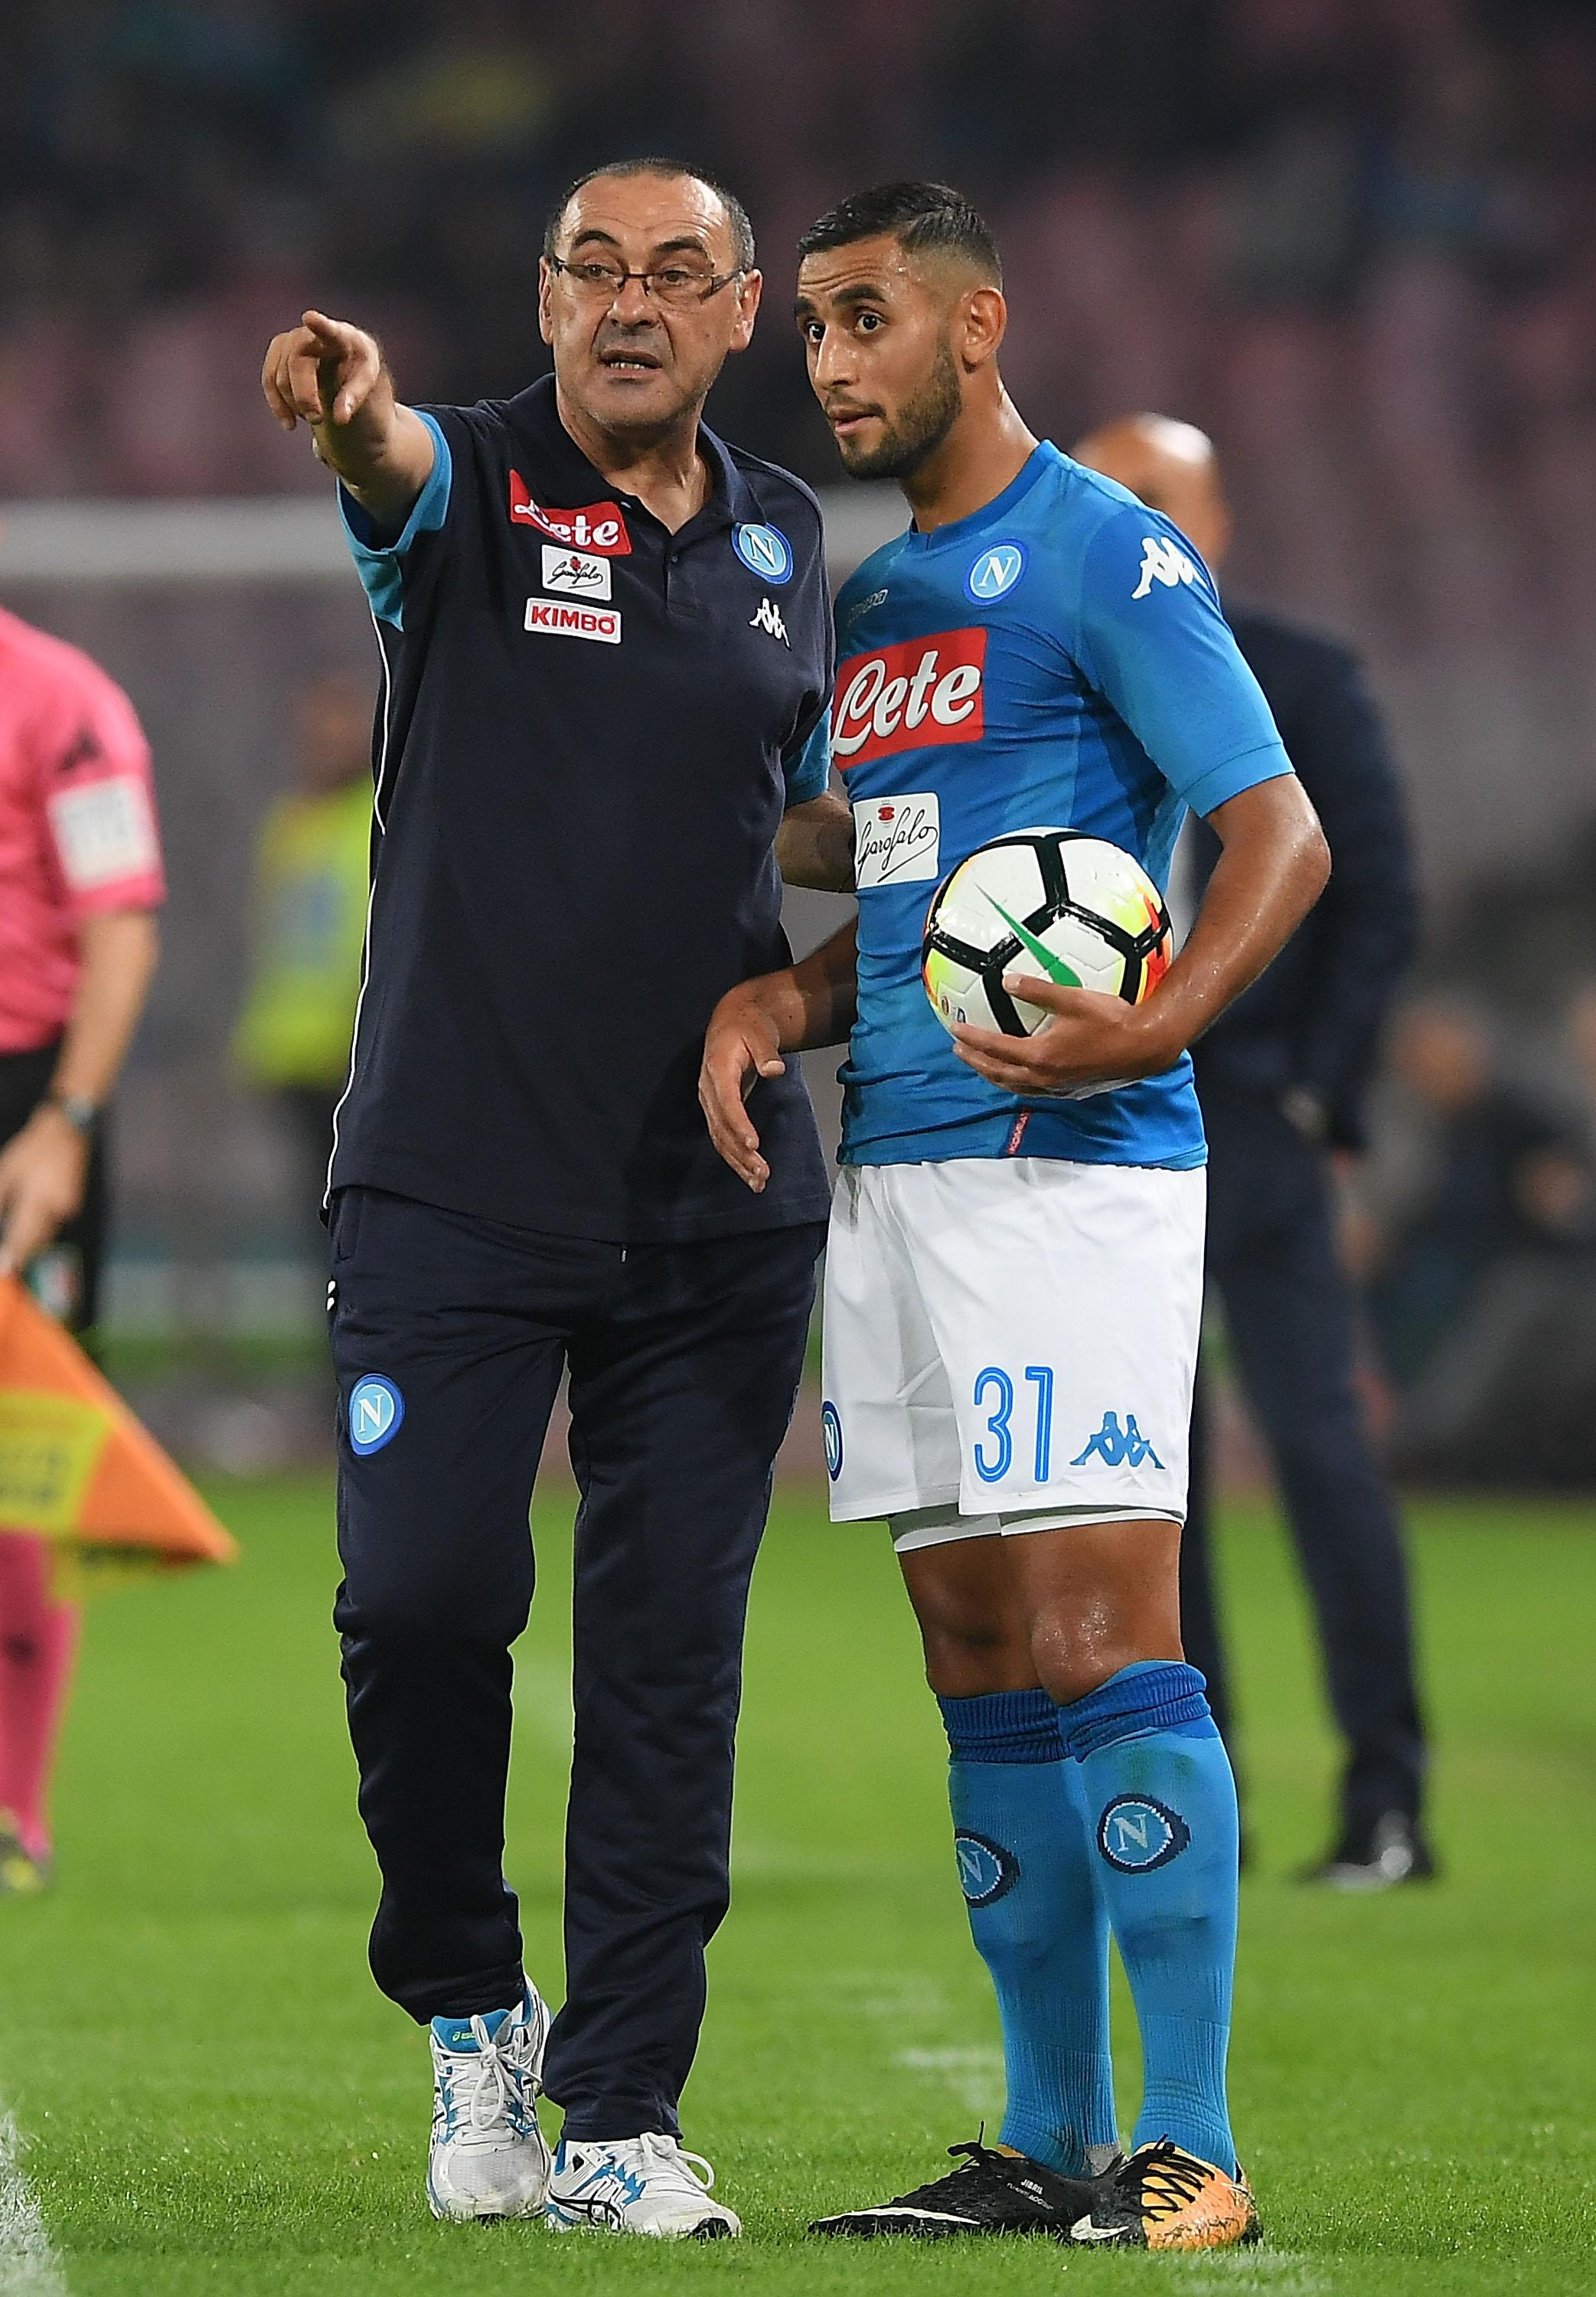 Sarri has a number of quirky superstitions he expects his players to follow